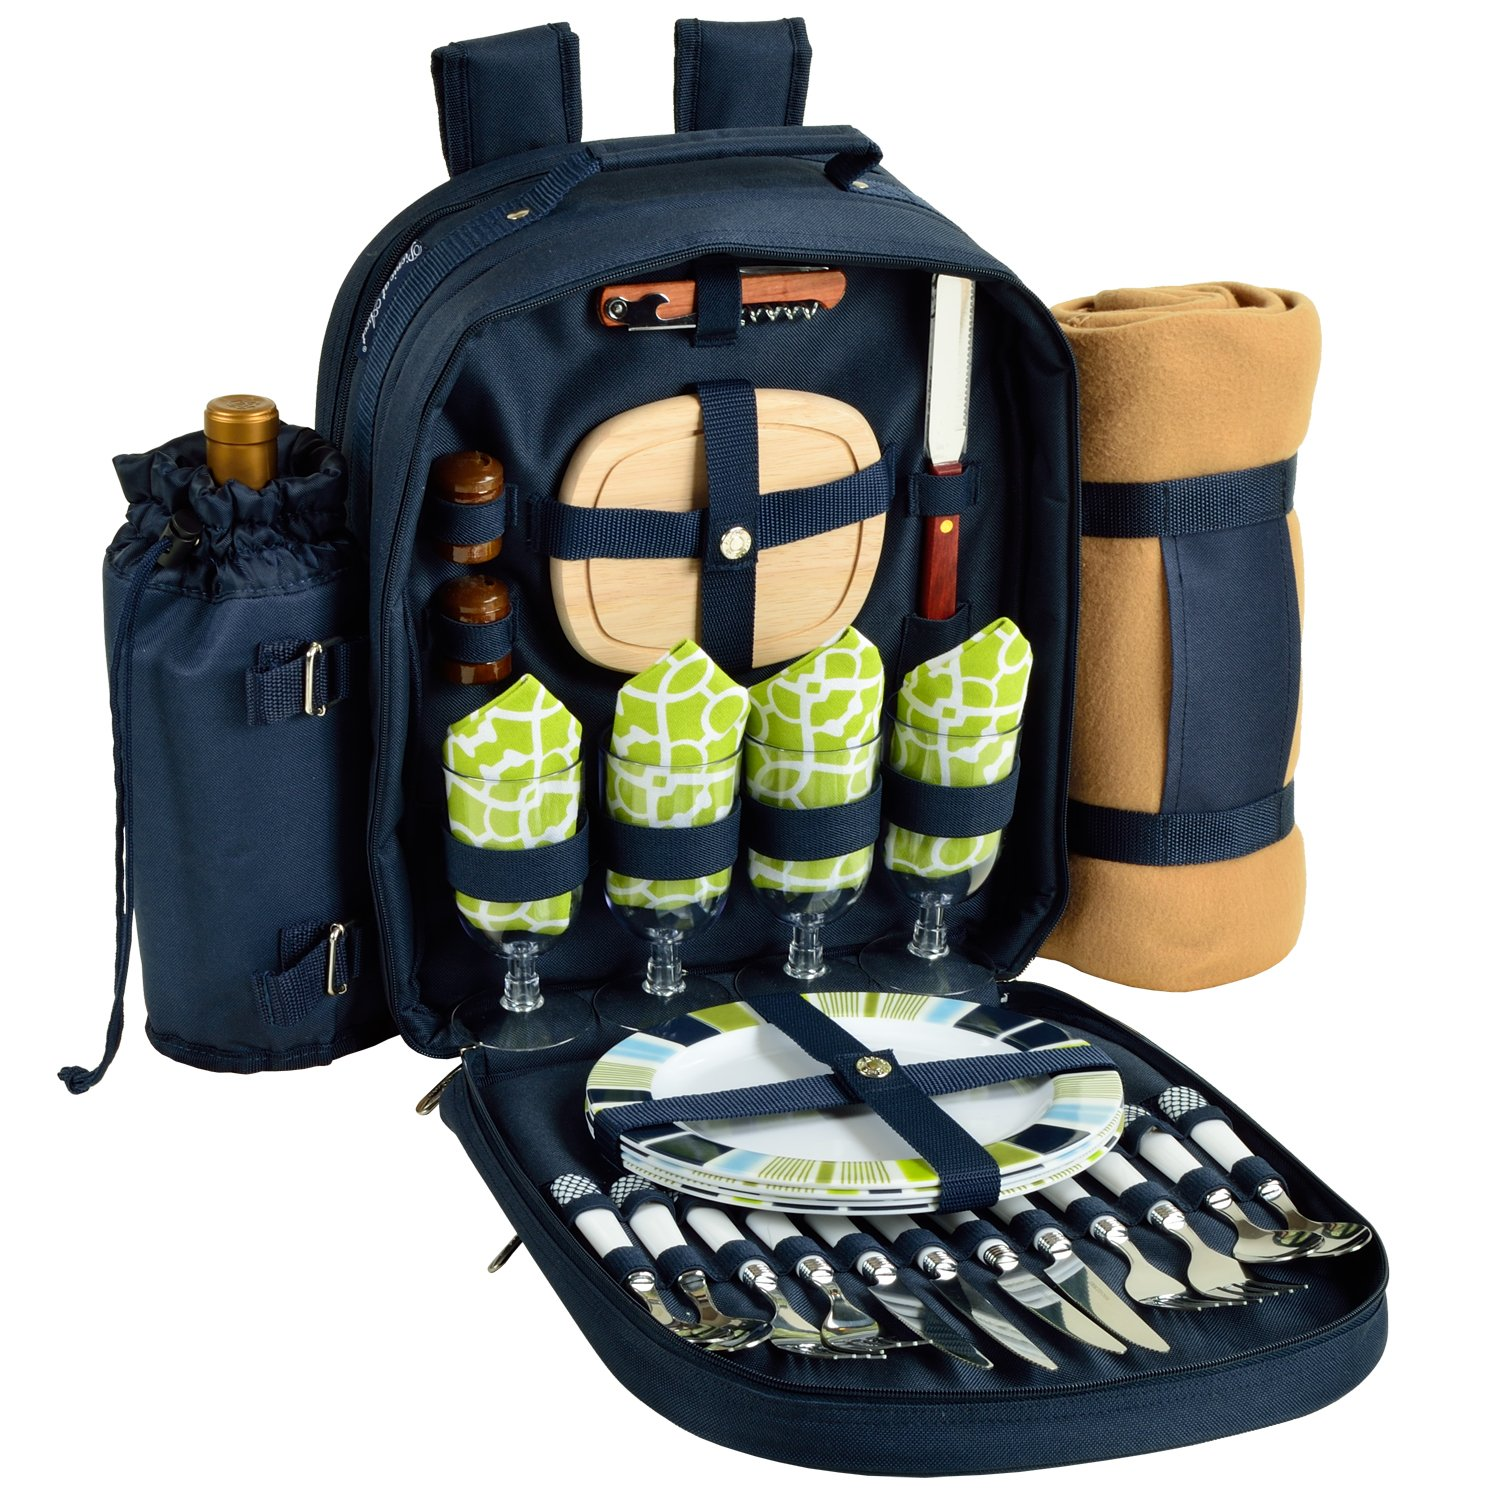 Picnic at Ascot - Deluxe Equipped 4 Person Picnic Backpack with Cooler, Insulated Wine Holder & Blanket - Trellis Green